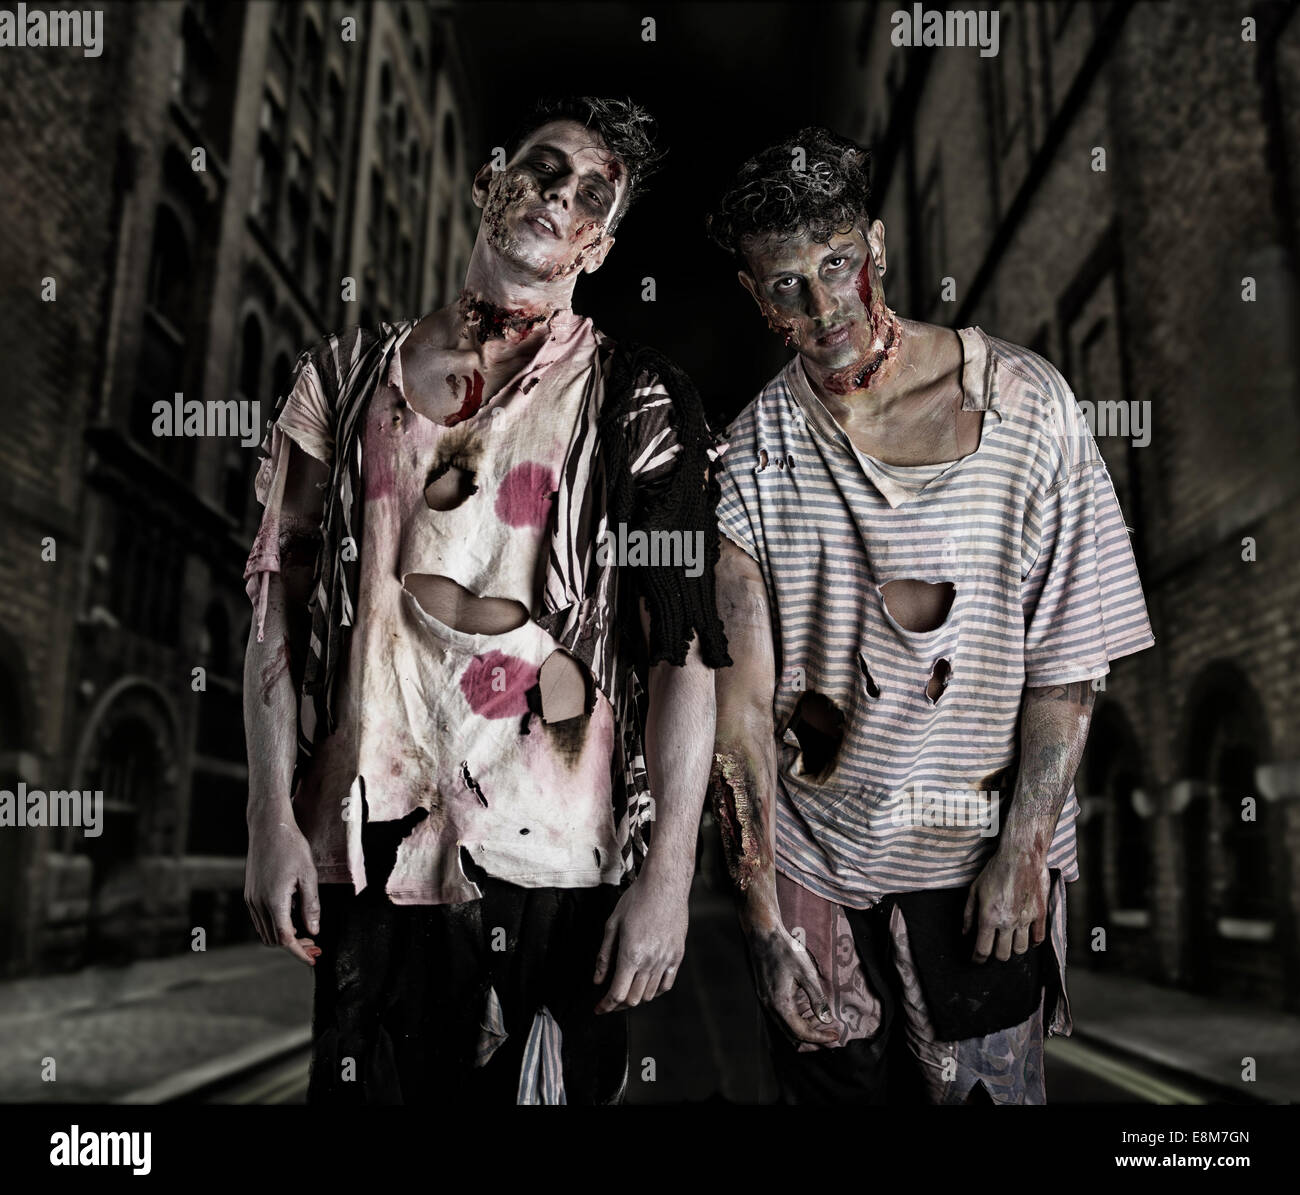 Two male zombies standing in empty city street at night looking at camera. Halloween theme - Stock Image